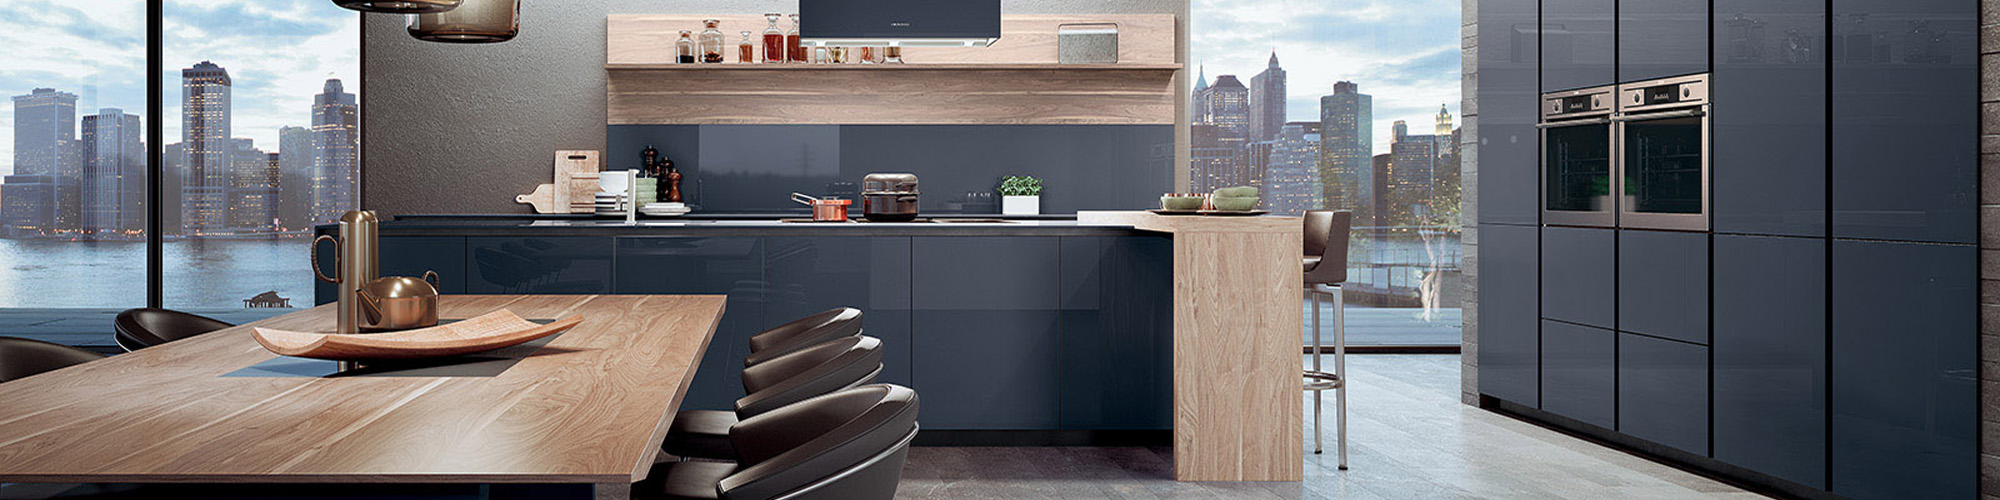 FCI Kitchens